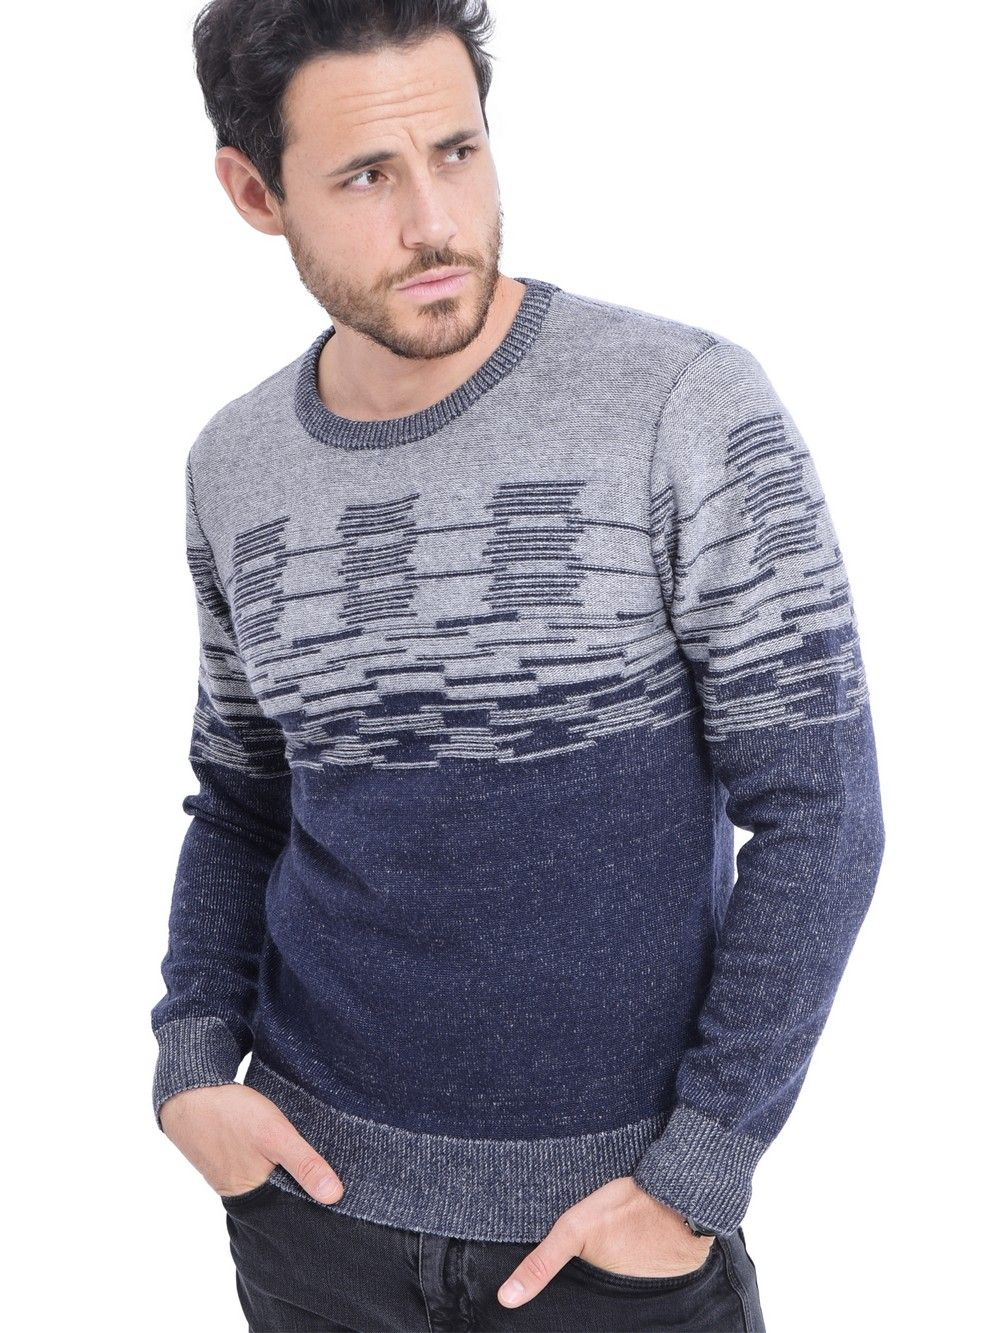 C&JO Round Neck 3-ply Jacquard Sweater in Navy